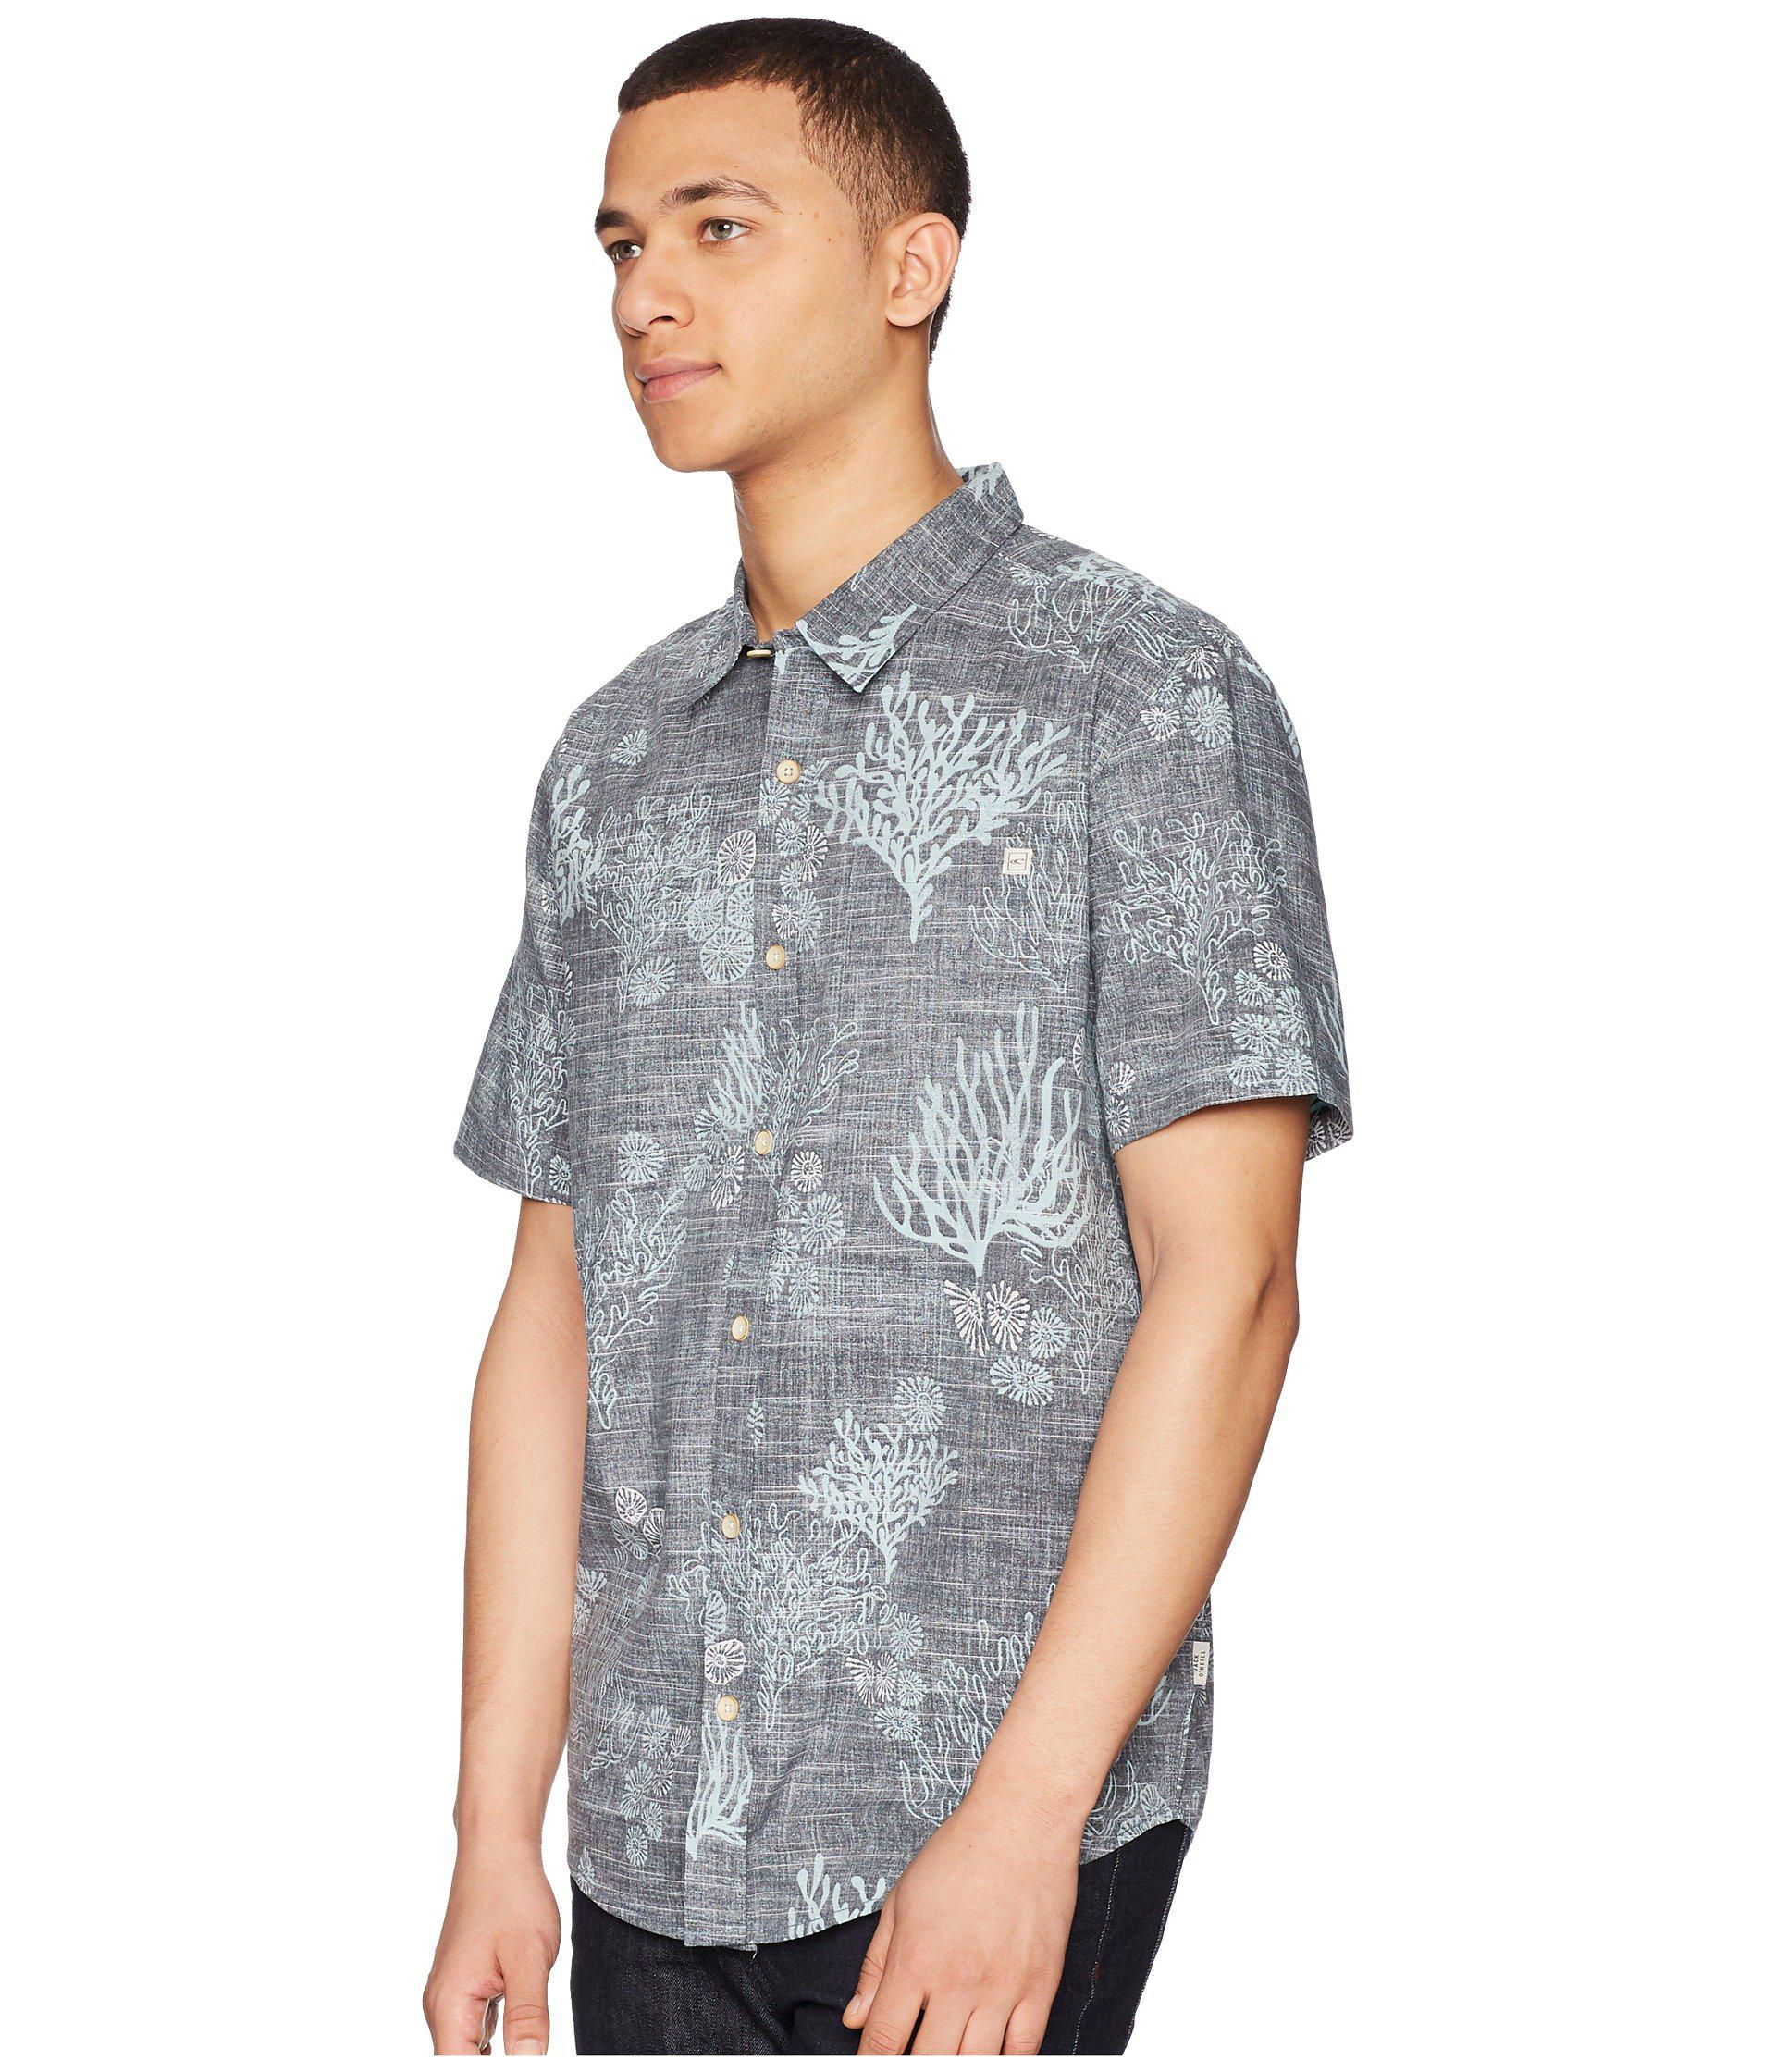 Woven For Sportswear O'neill Men Reef Gray In 22 Lyst Save 3j4Rq5AL